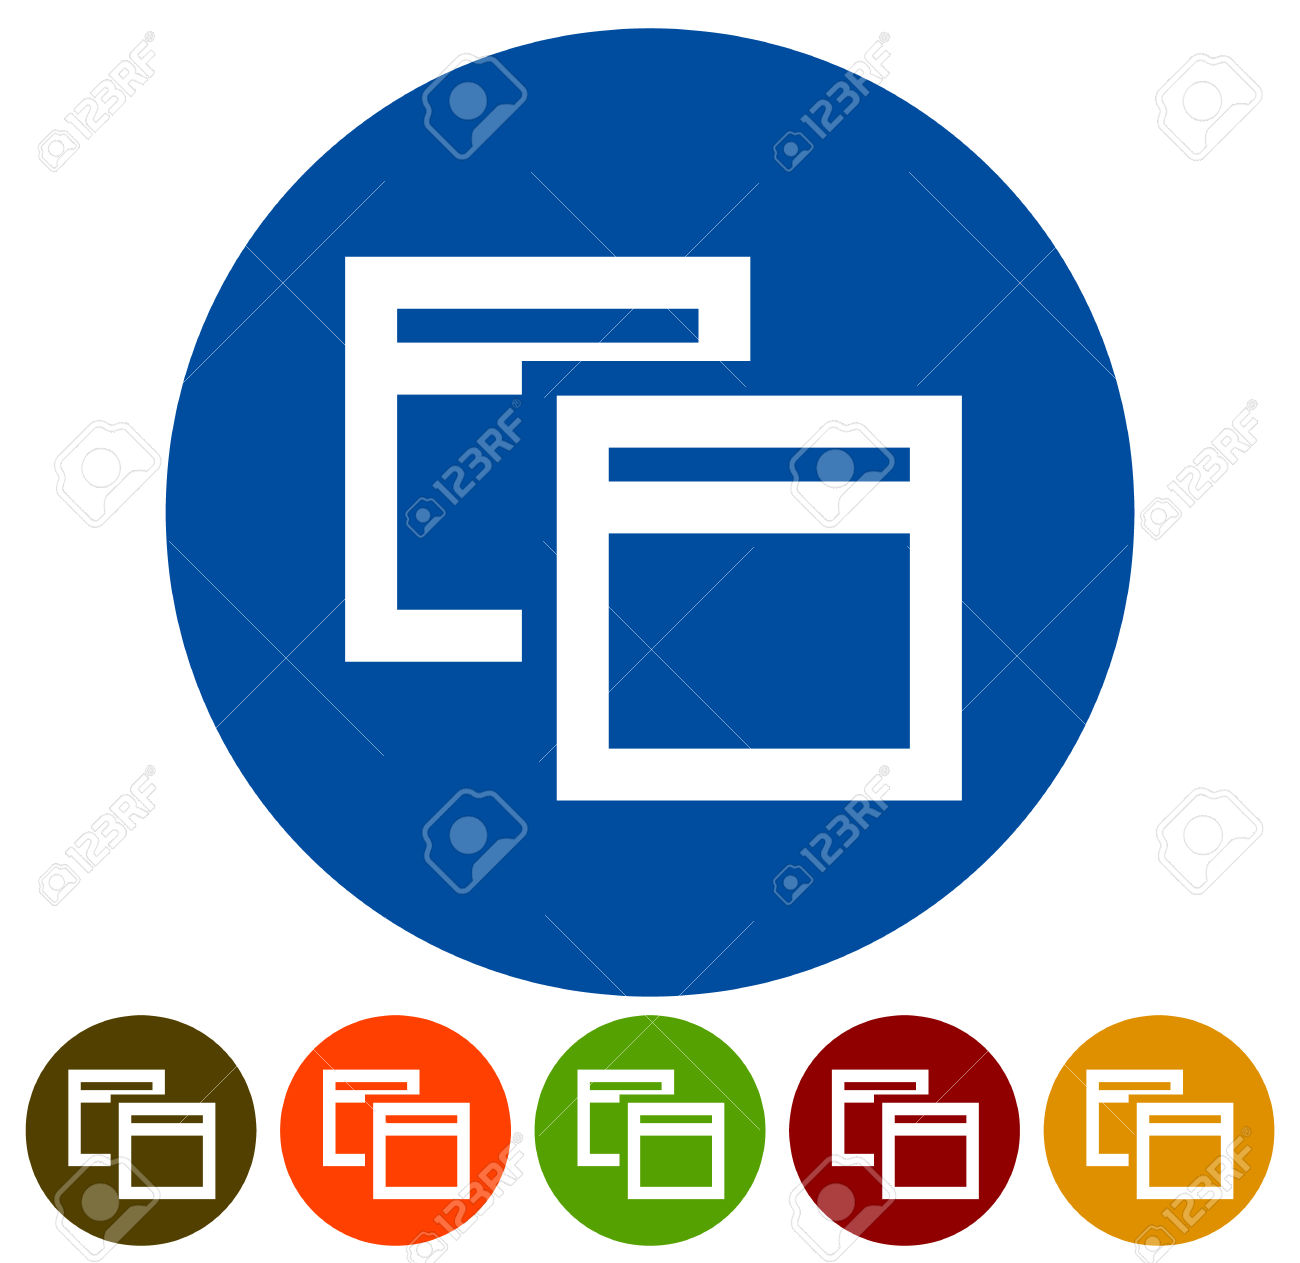 Application window clipart - Clipground